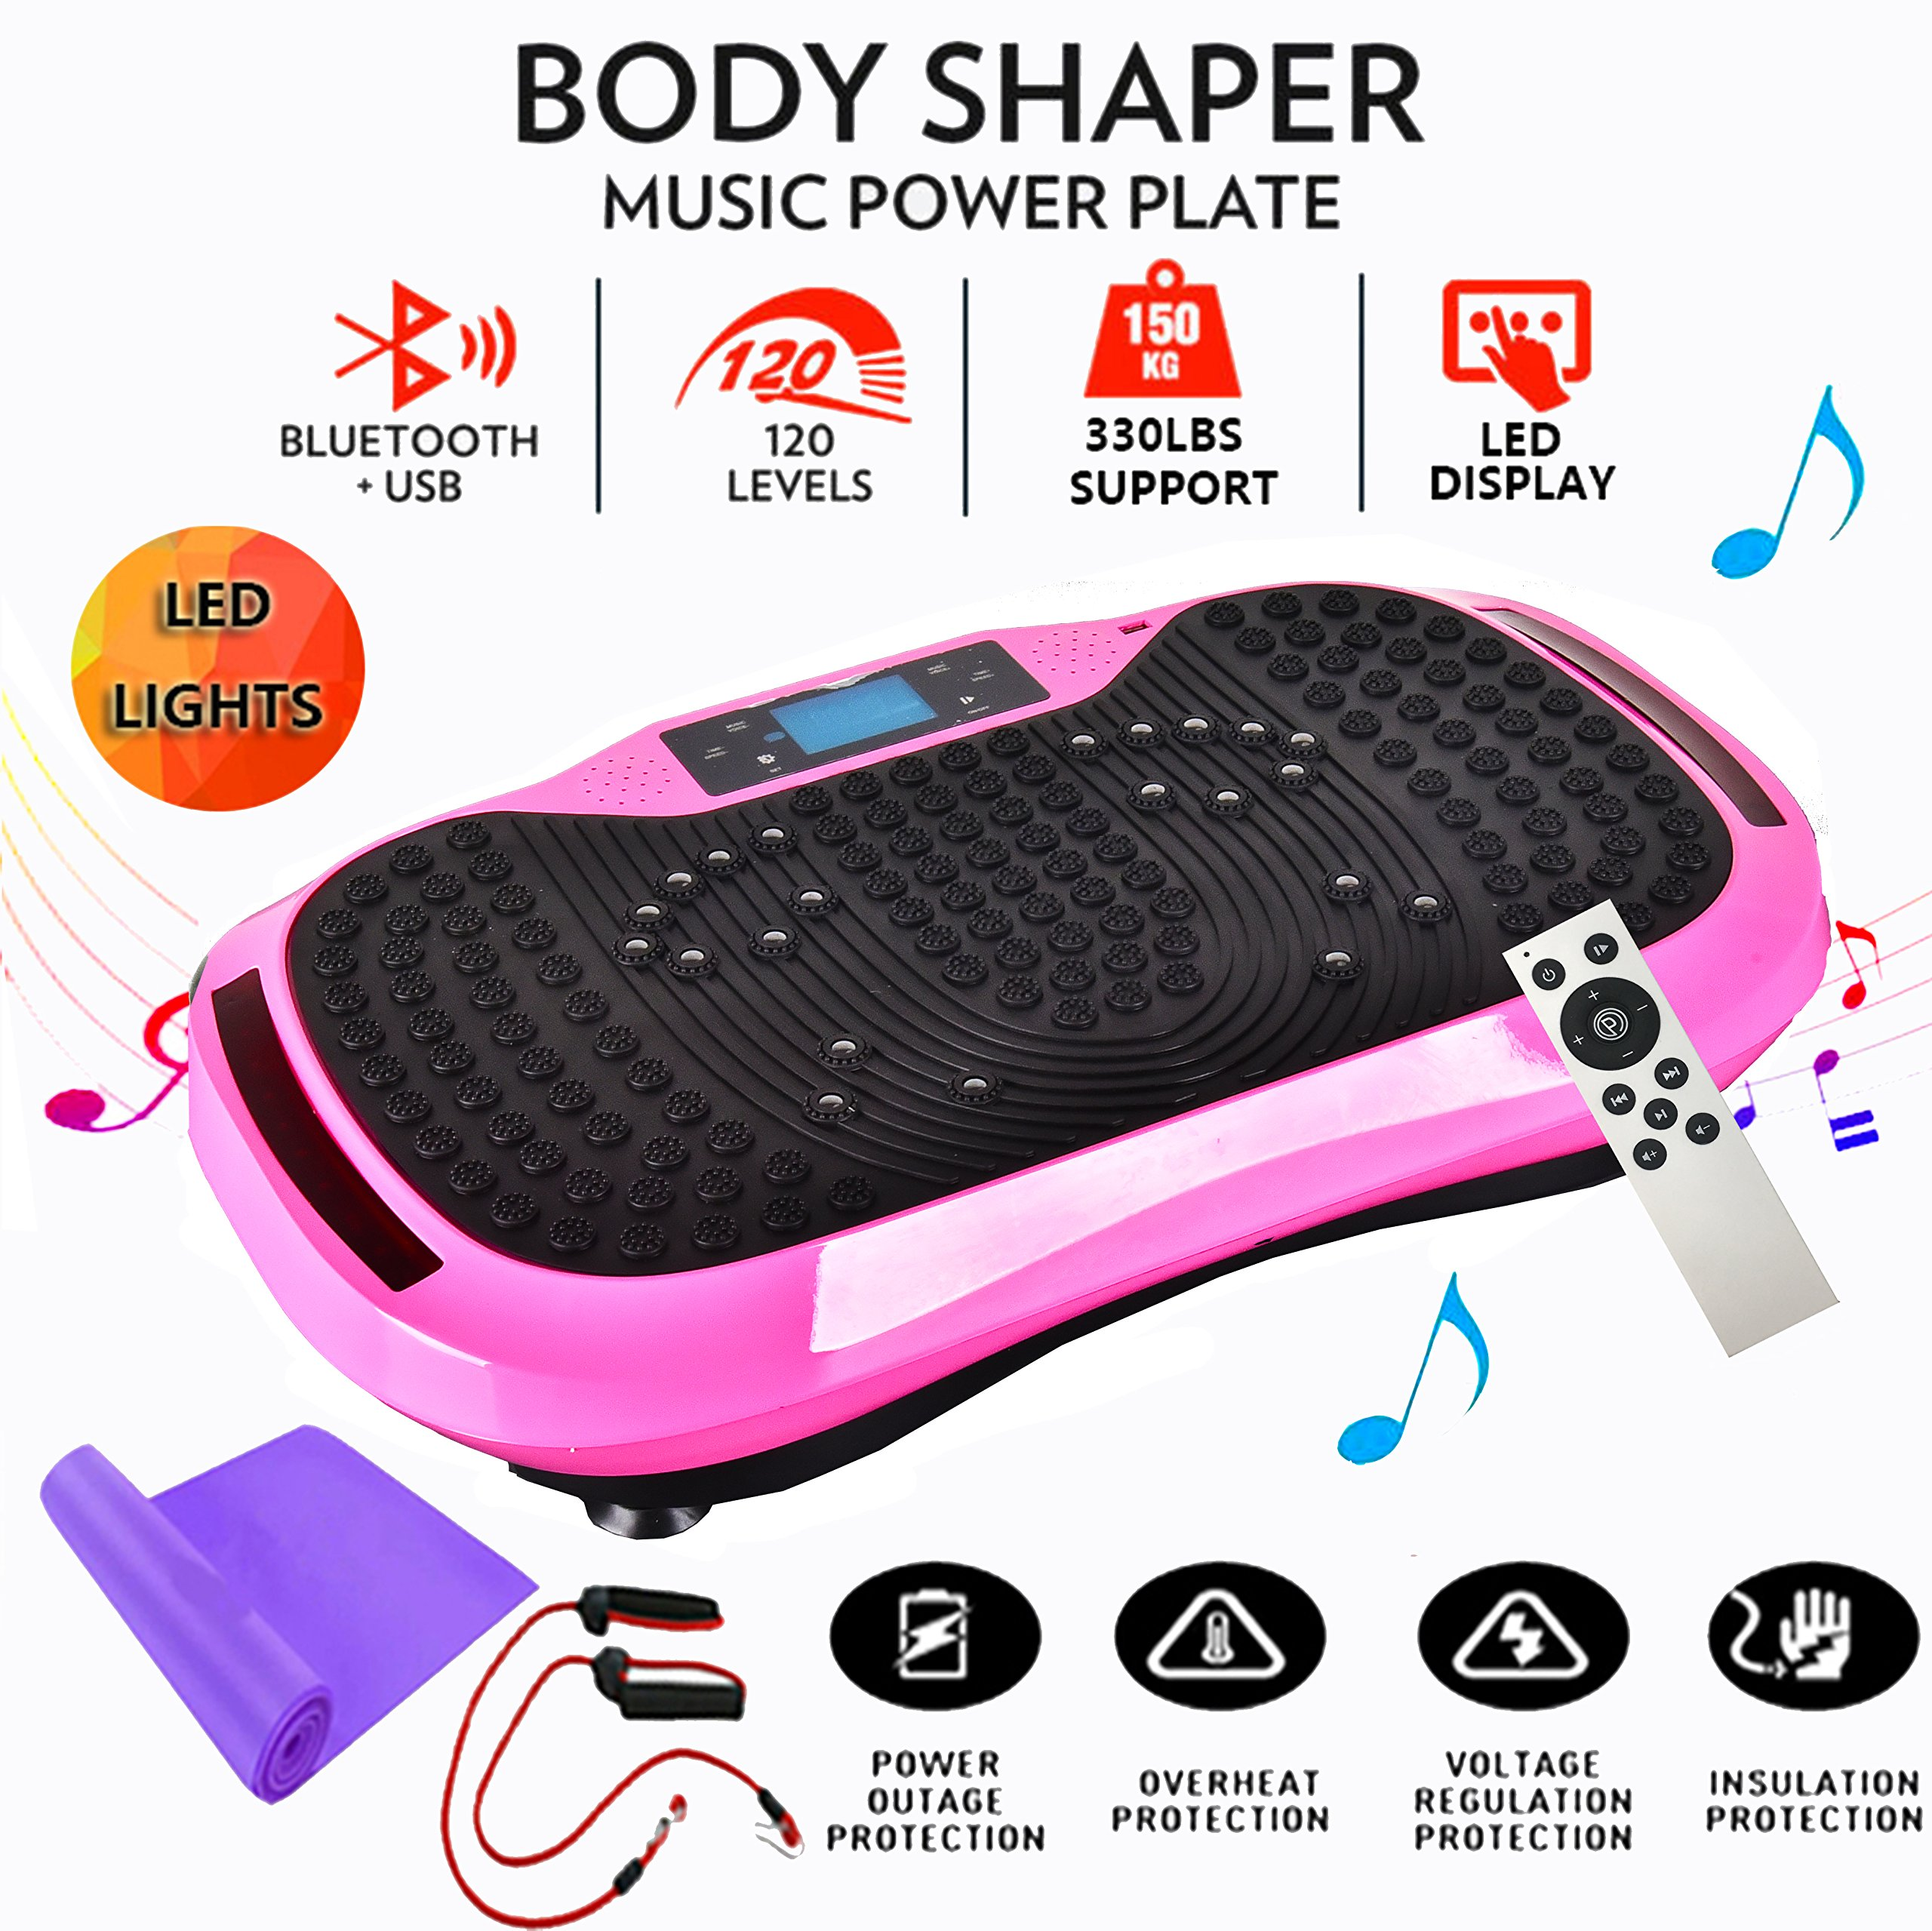 Reliancer Built-in Music Player Fitness Vibration Platform Whole Full Body Shaped Crazy Fit Plate Massage Workout Trainer Exercise Machine Plate w/Integrated USB Port&LED Light (W/Music-Pink) by Reliancer (Image #1)